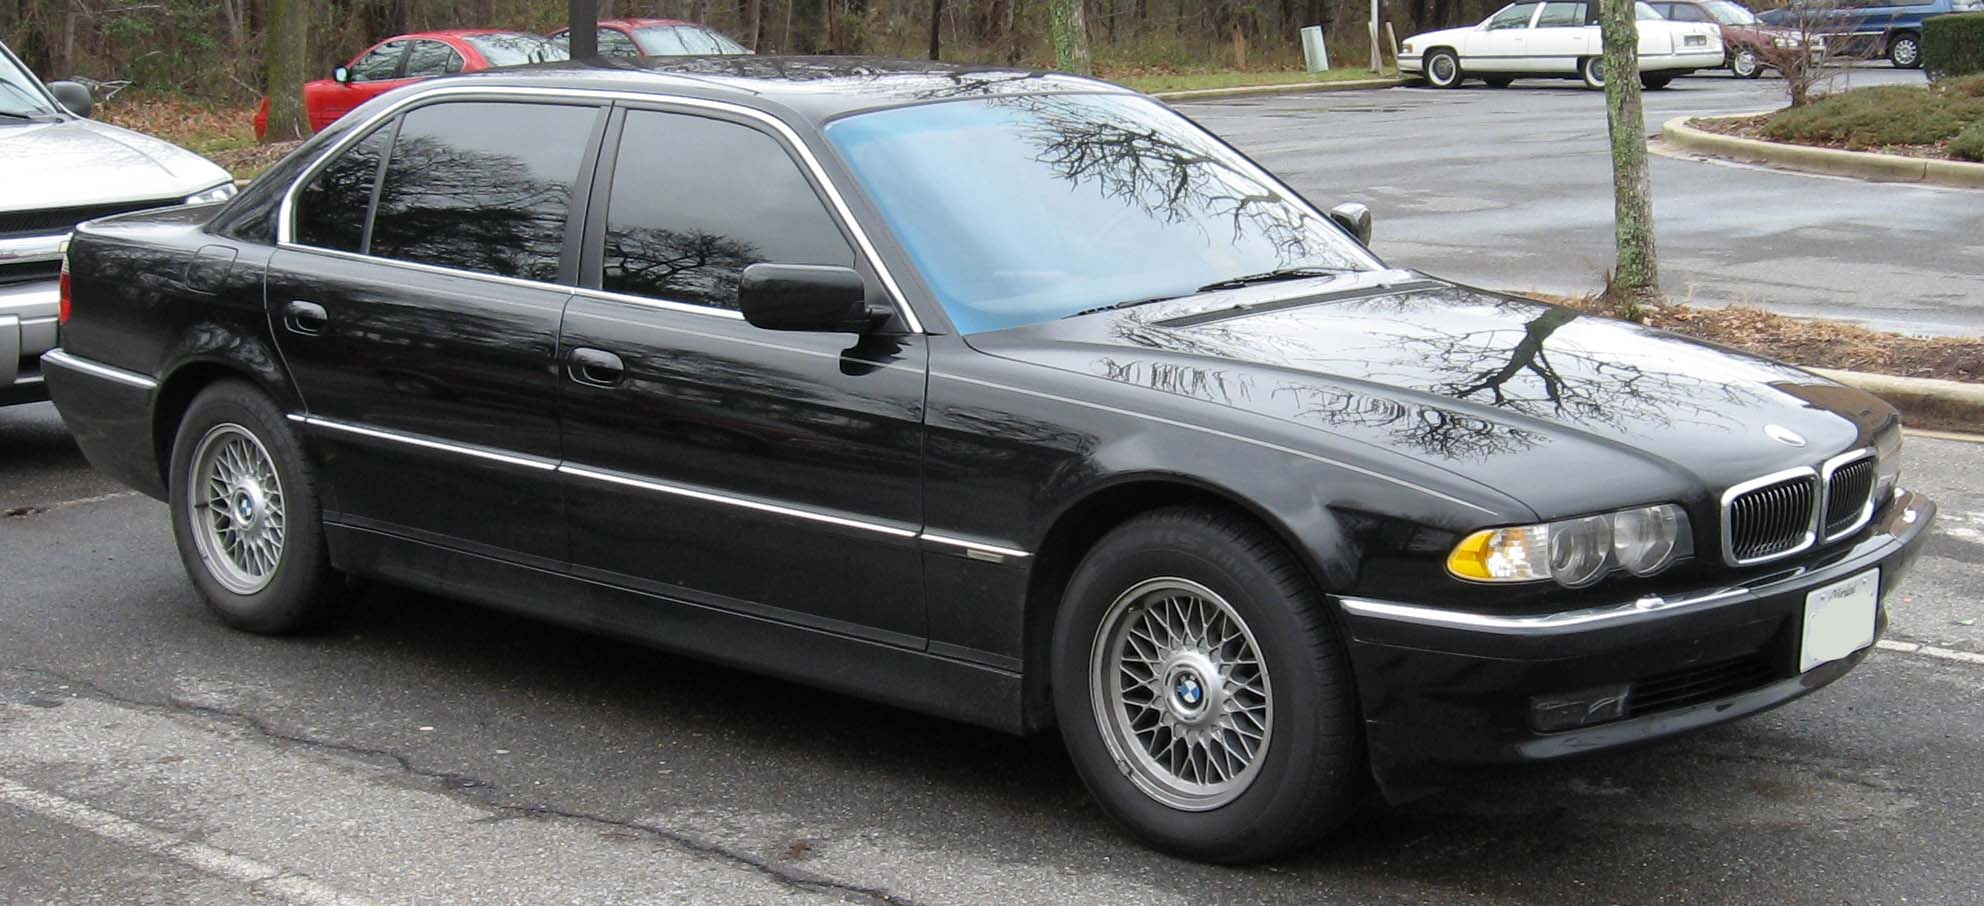 1998 Bmw 7 Series Information And Photos Zombiedrive